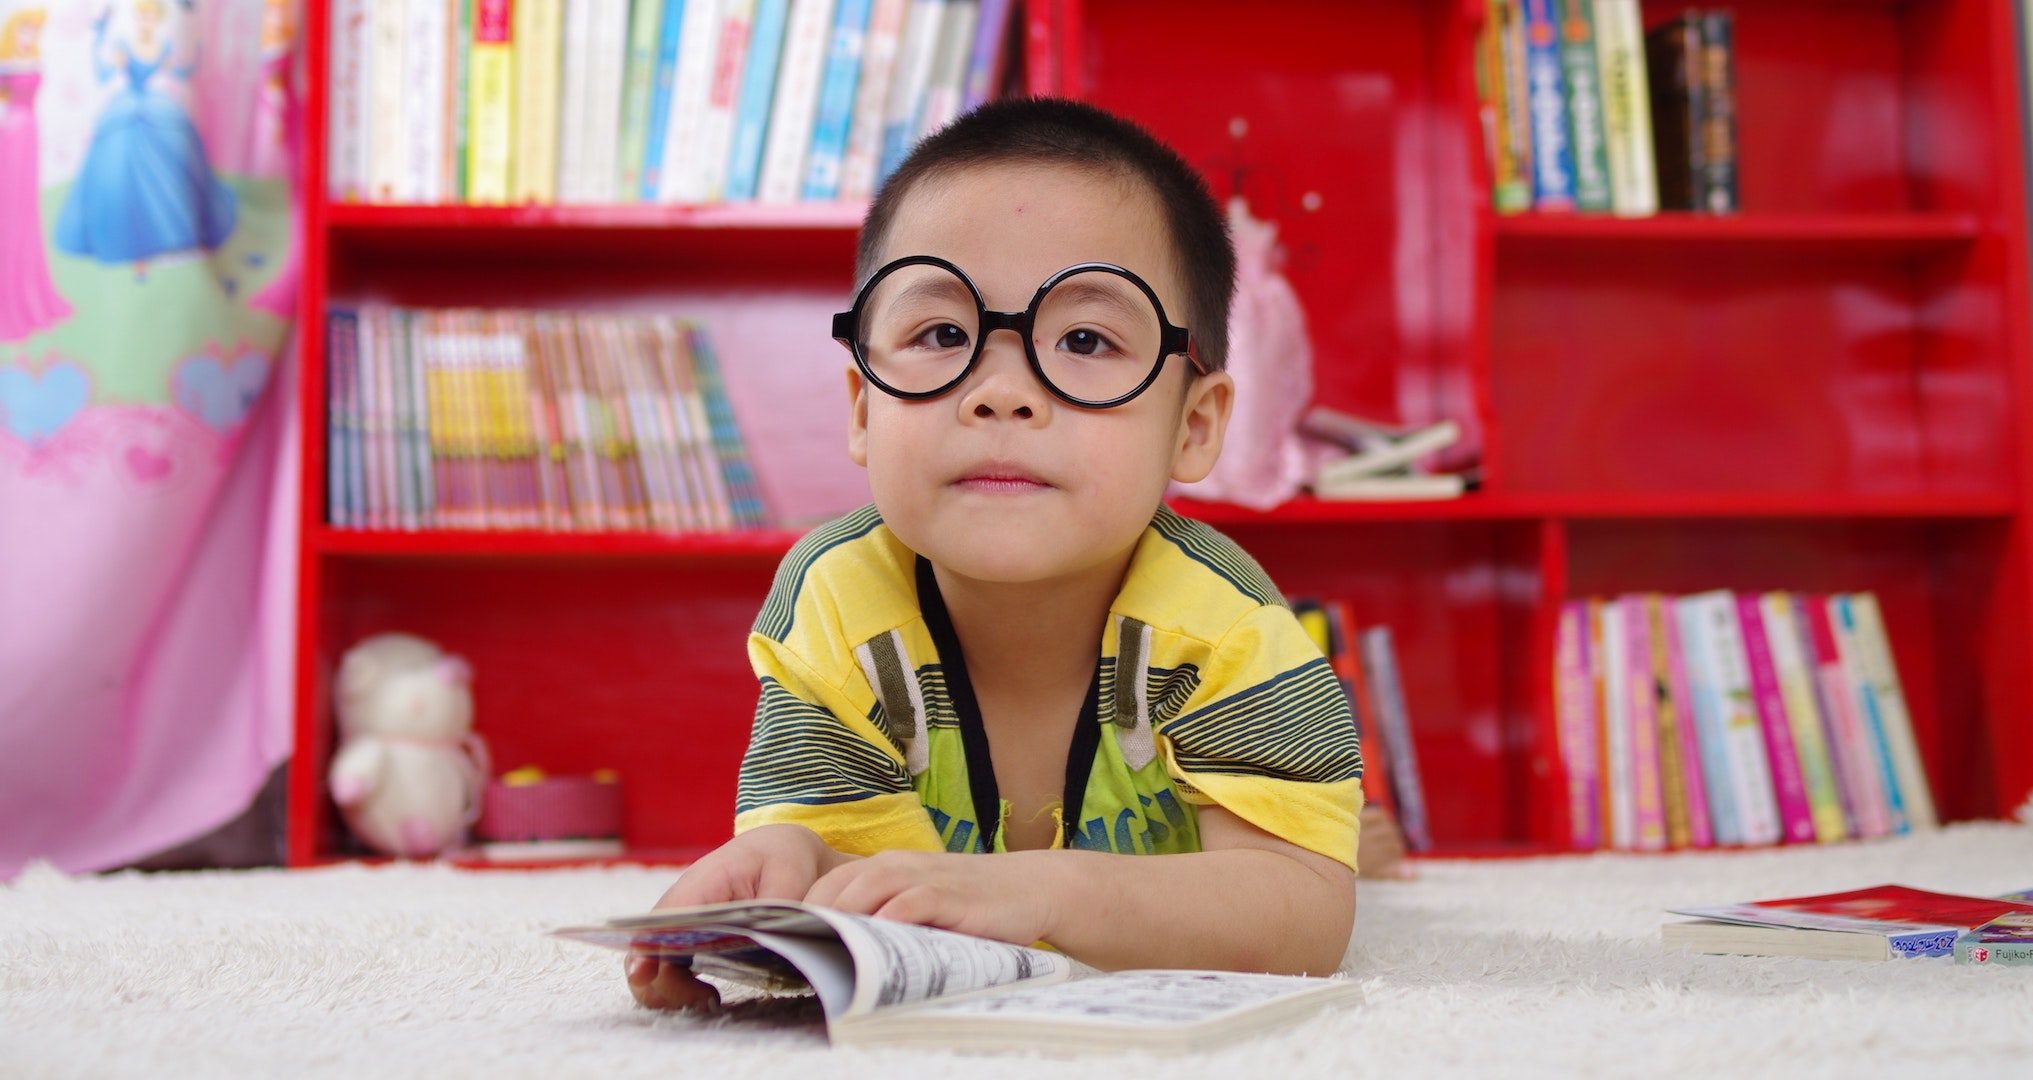 little boy with glasses reading a book in a library